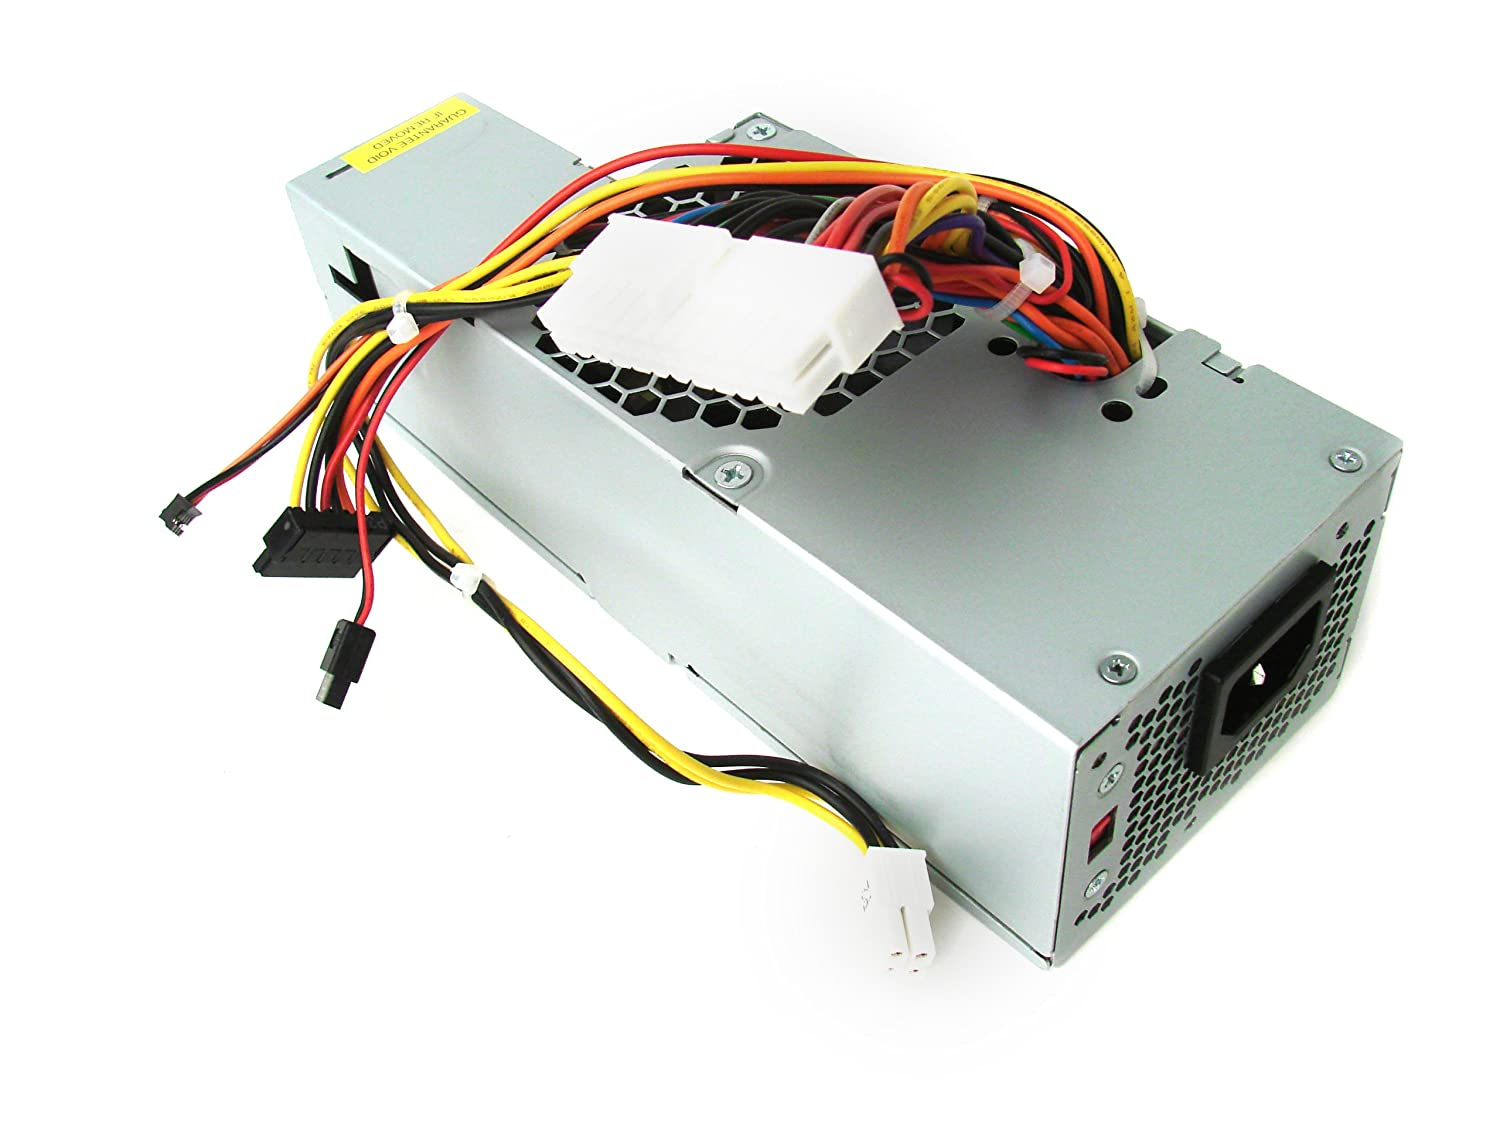 где купить Genuine Dell 275w Power Supply For the Optiplex 740, 745, 755, Dimension 9200c, and XPS 210 Small Form Factor Systems SFF Dell part numbers: RM117, PW124, FR619, WU142 Model numbers: HP-L2767FPI LF, DPS-275CB-1A, HP-U2757F331 LF, PS-5271-3DF1-LE, H275P-0 дешево